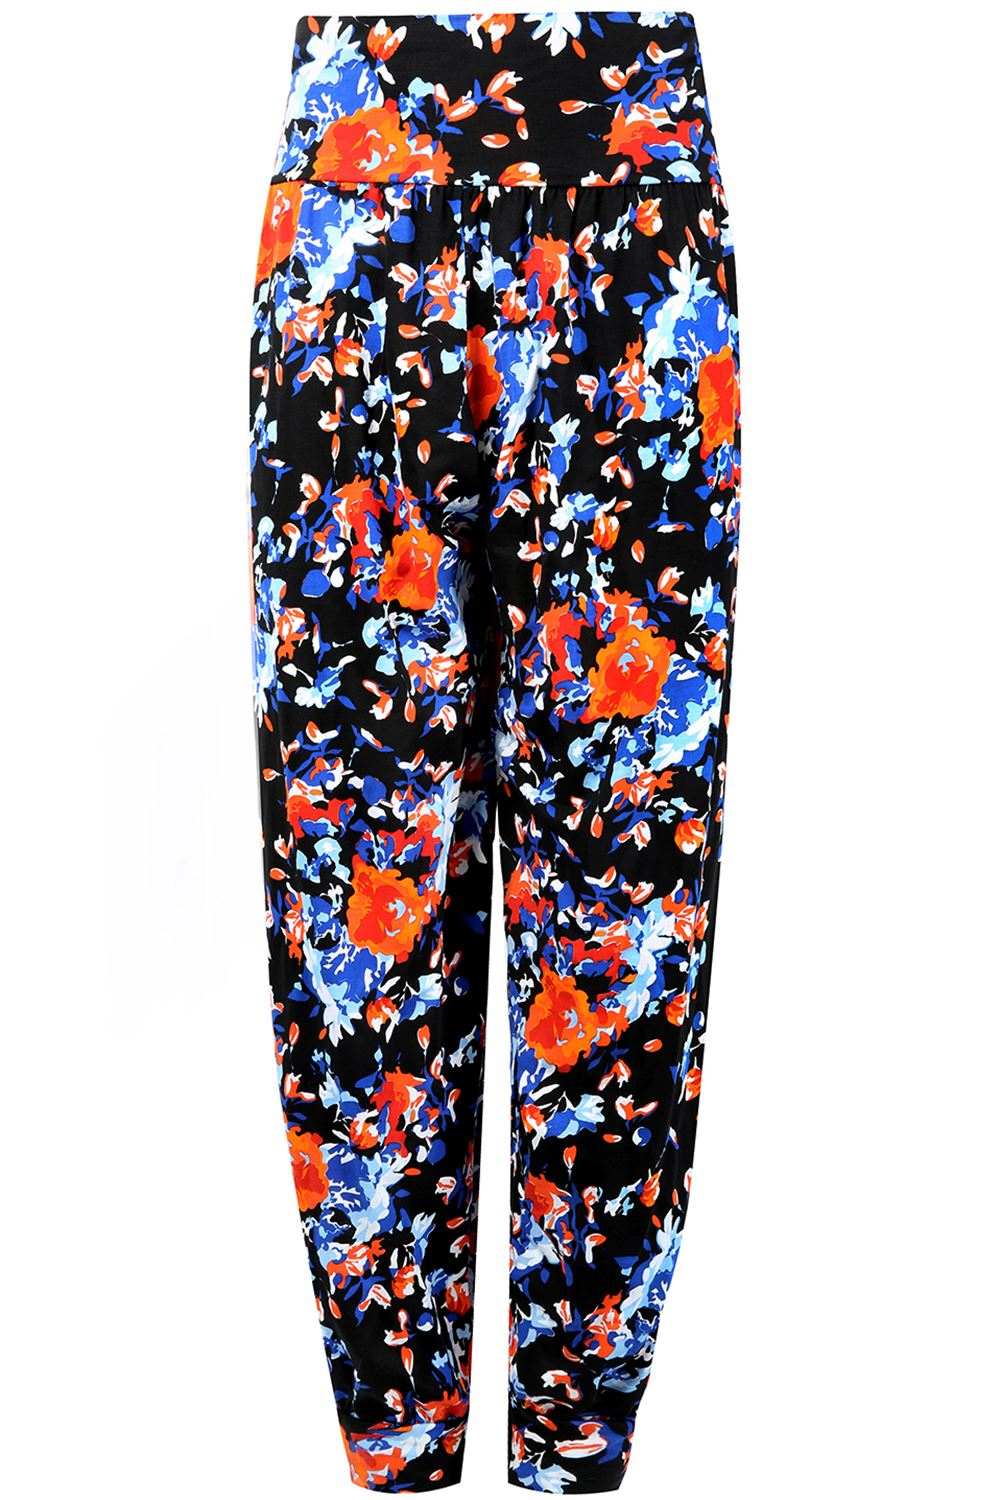 Floral Pants. Floral pants are a fun, feminine way to add freshness to any wardrobe. Tons of solid color tops and sweaters are just waiting to be jazzed up with an adorable floral print. This is an effortless fashion statement; simply choosing a top in one of the shades of the pants and adding shoes is all it takes to find success.